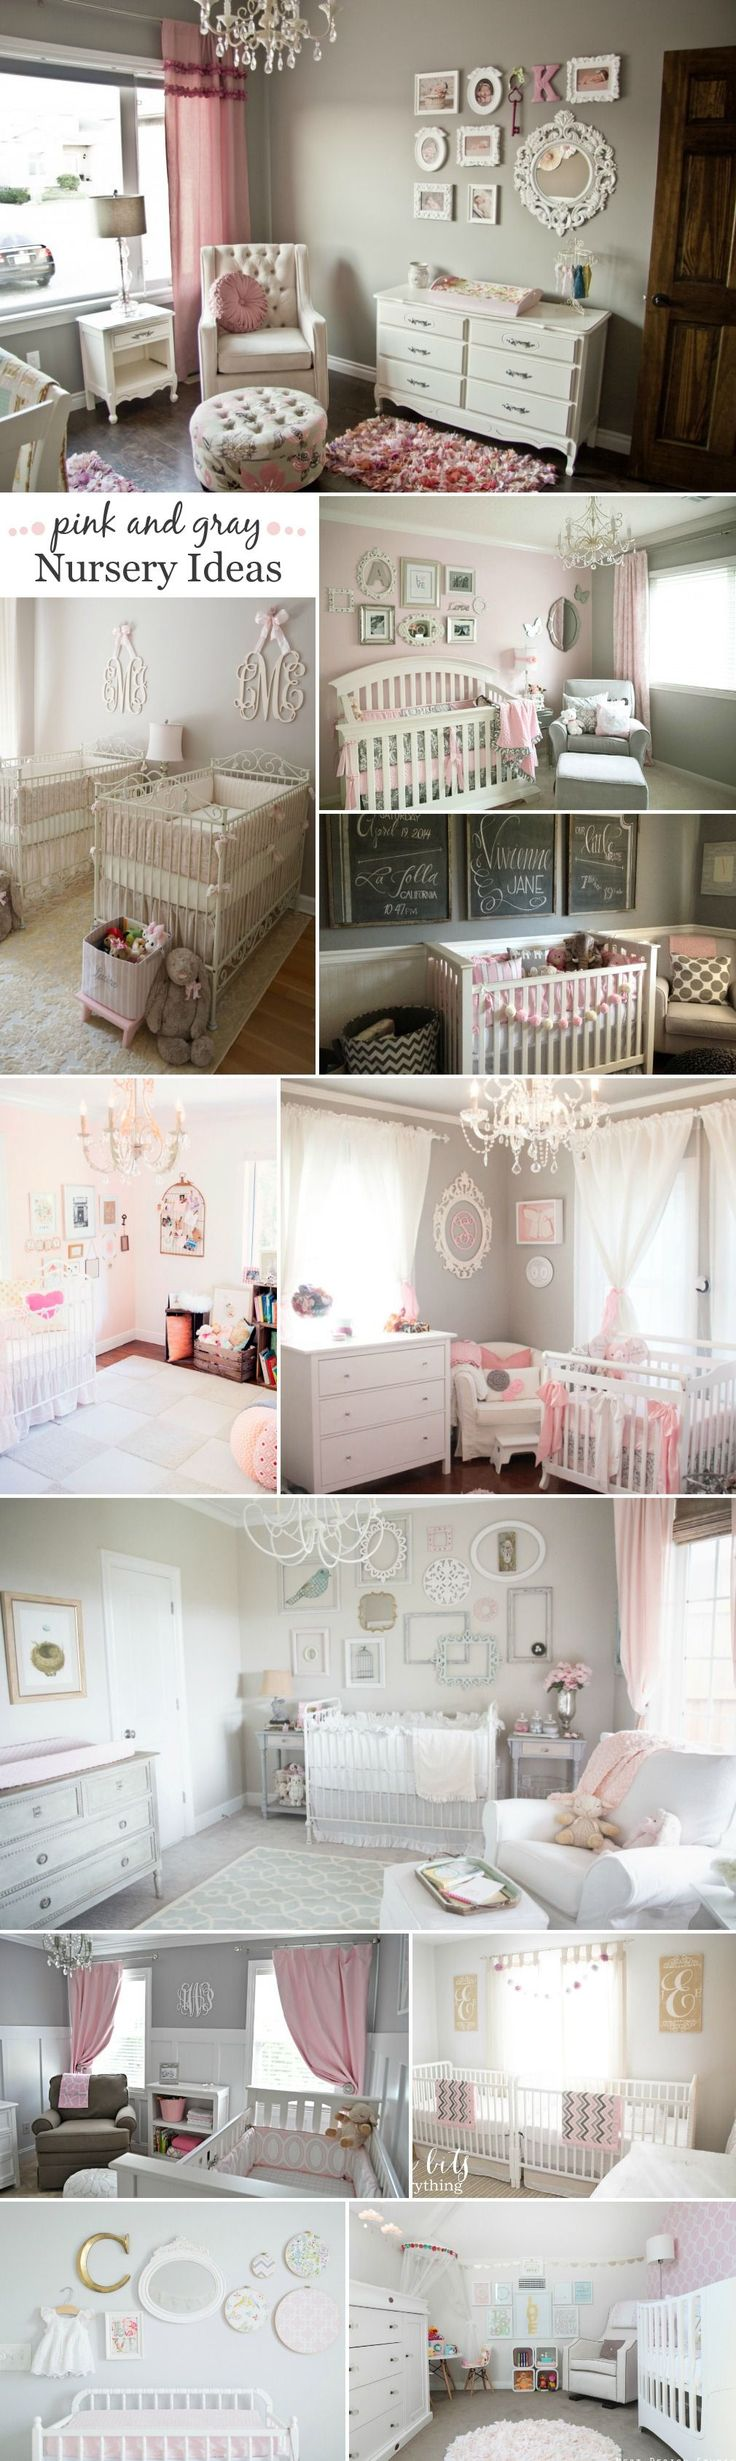 45 best Baby nursery images on Pinterest | Baby room neutral ...